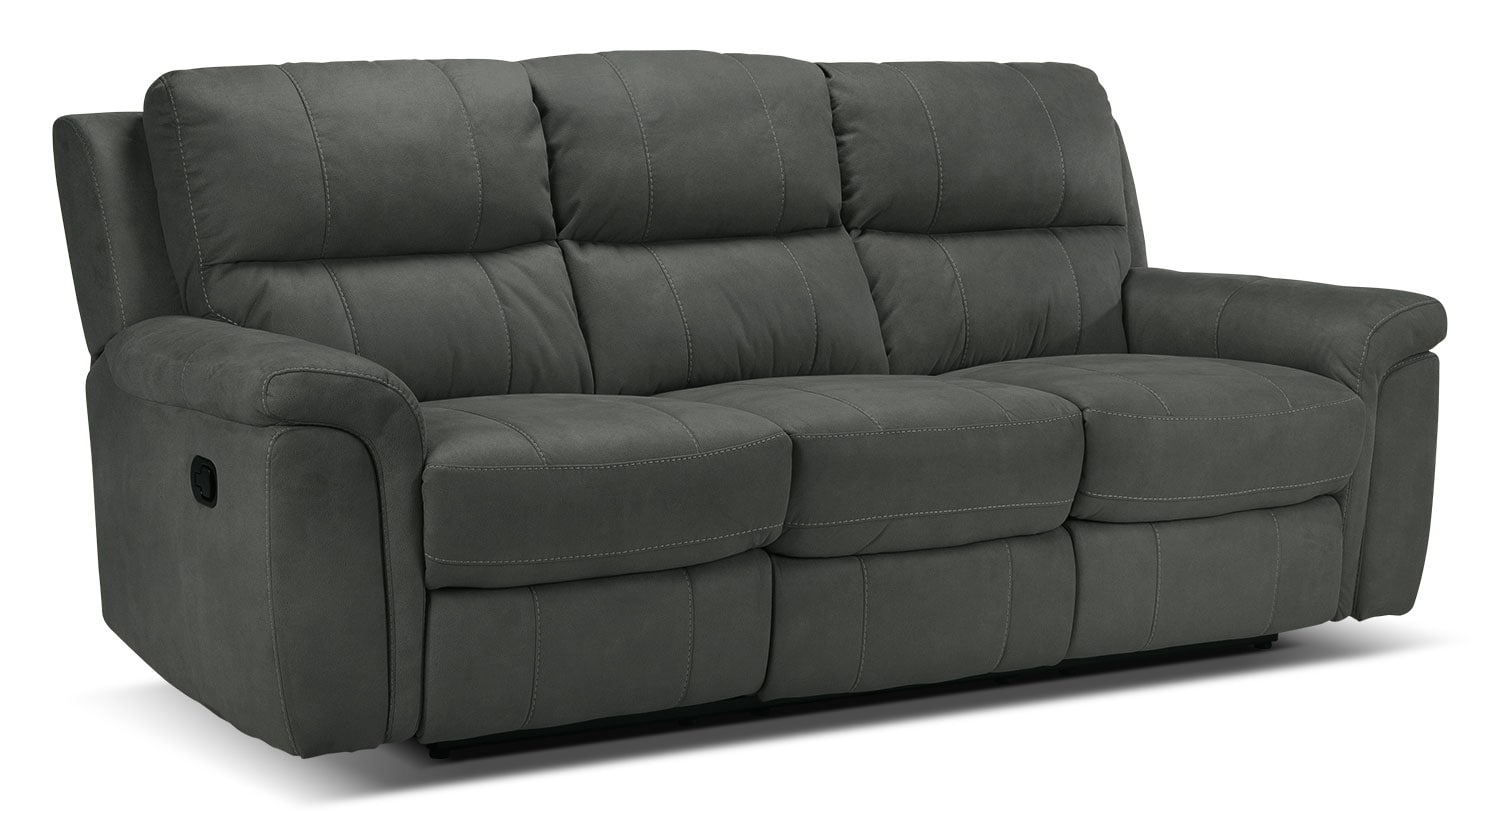 Living Room Furniture - Roarke Reclining Sofa - Charcoal